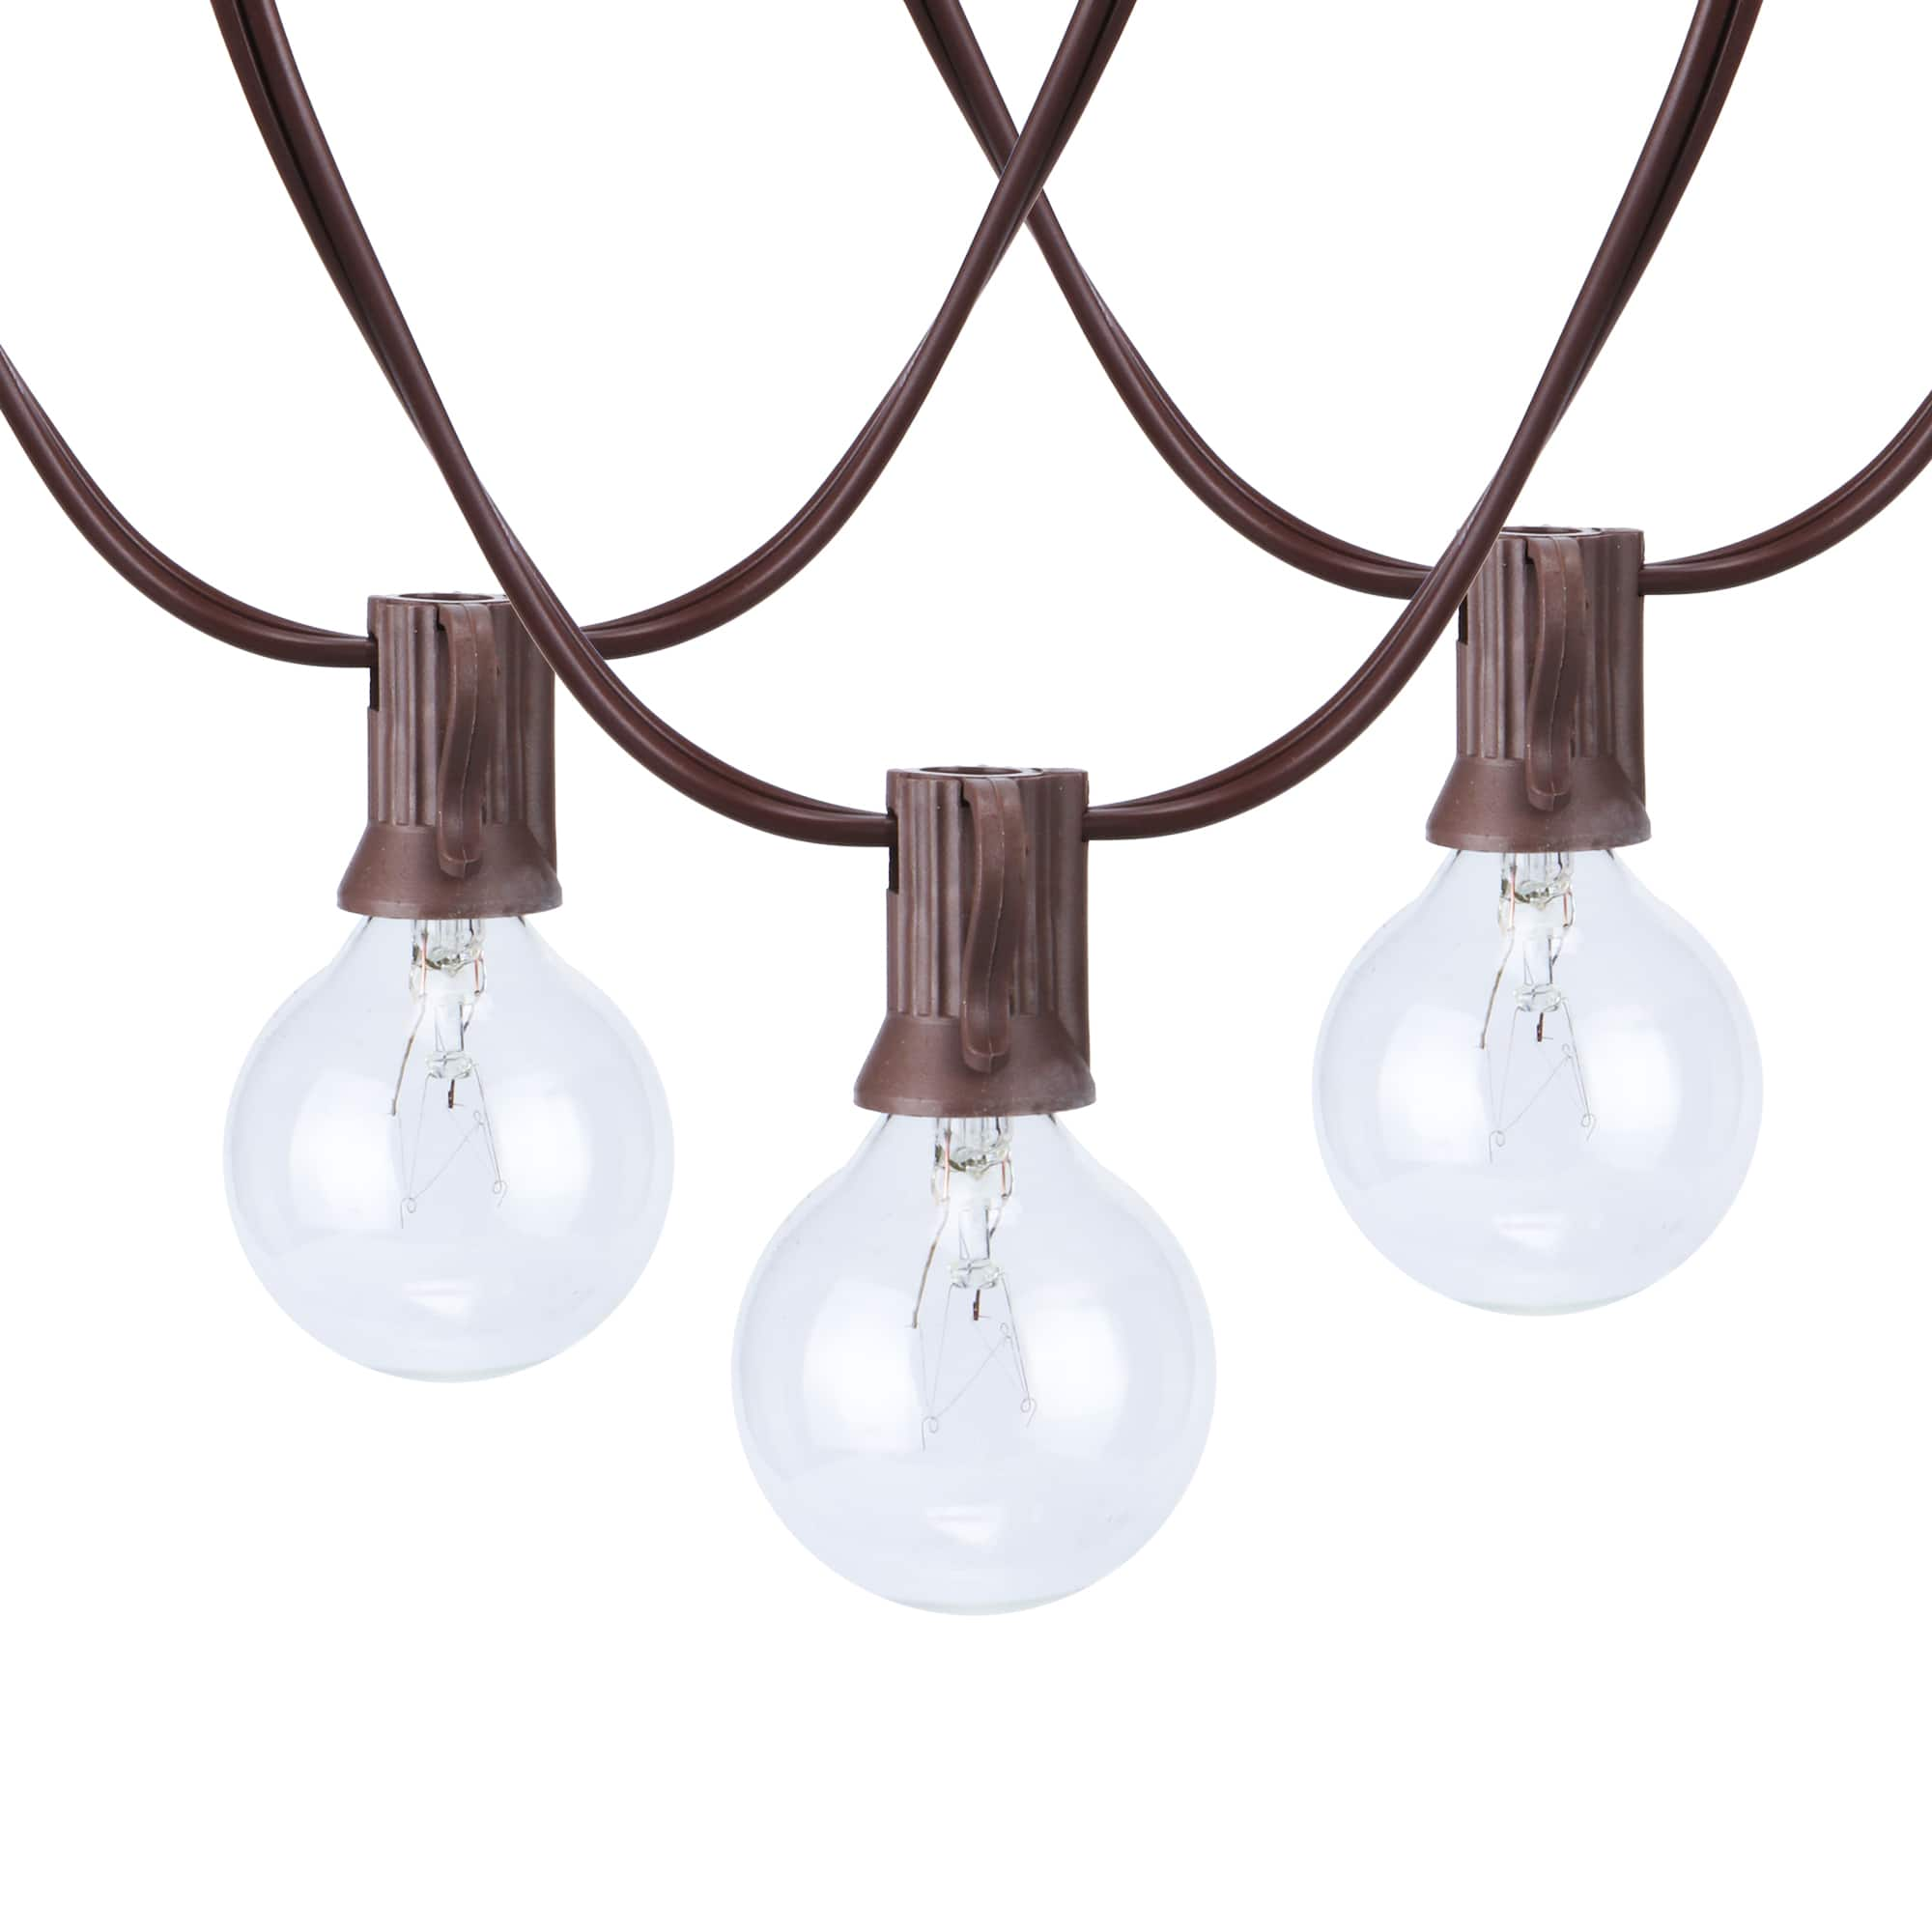 Better Homes and Gardens String lights 18.7 feet small globes $12.78